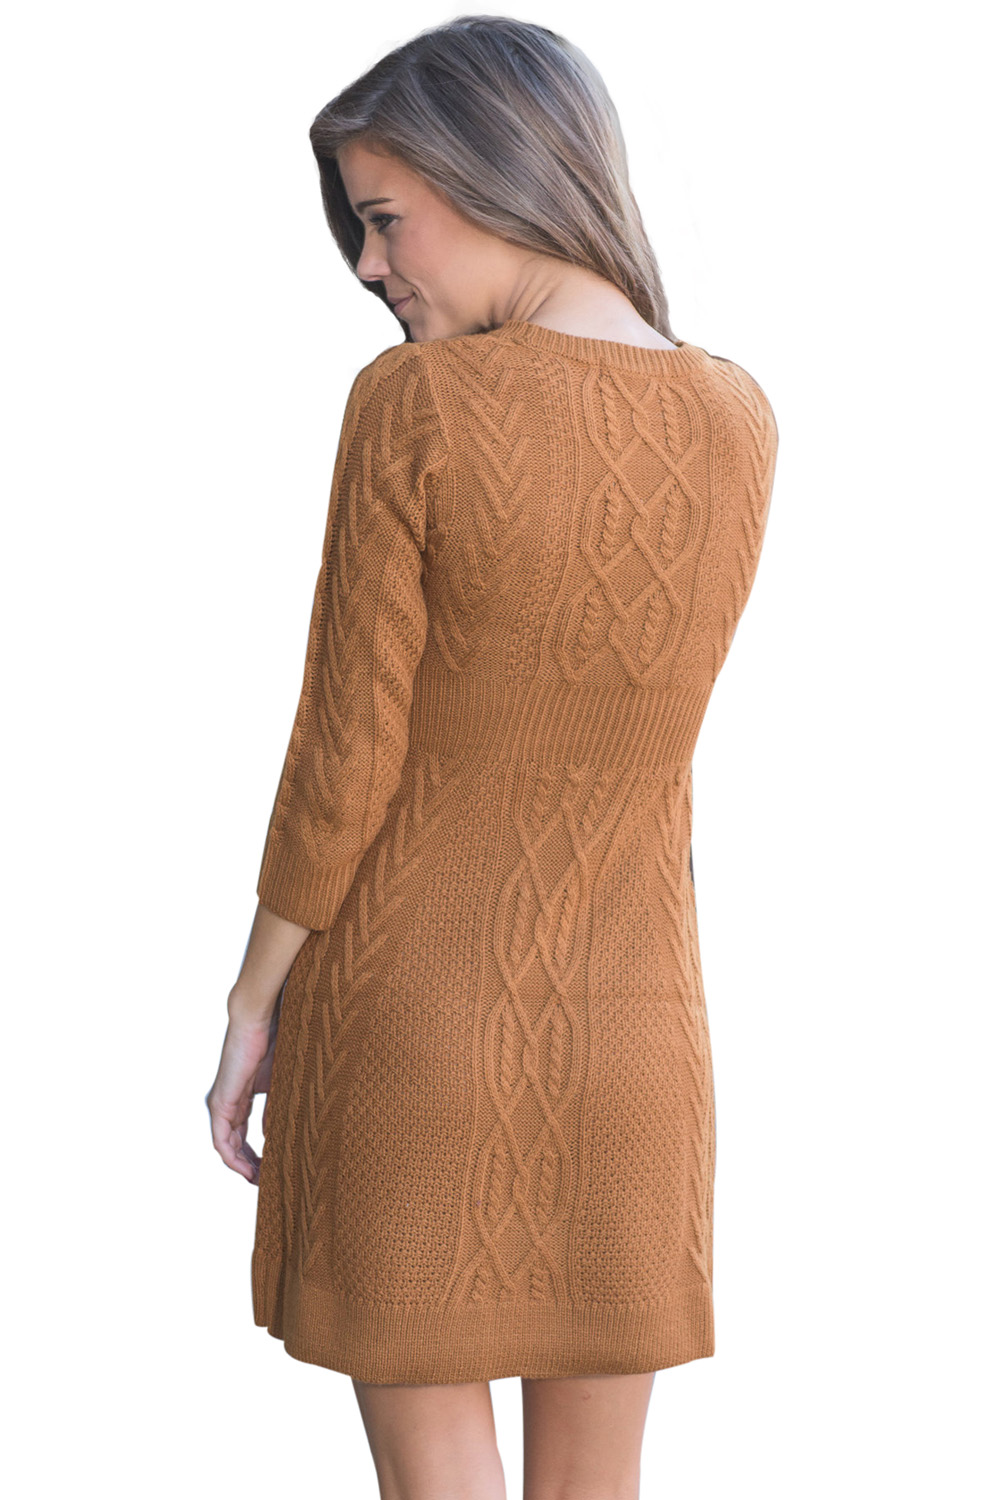 BY27692-17 Brown Cable Knit Fitted Sweater Dress